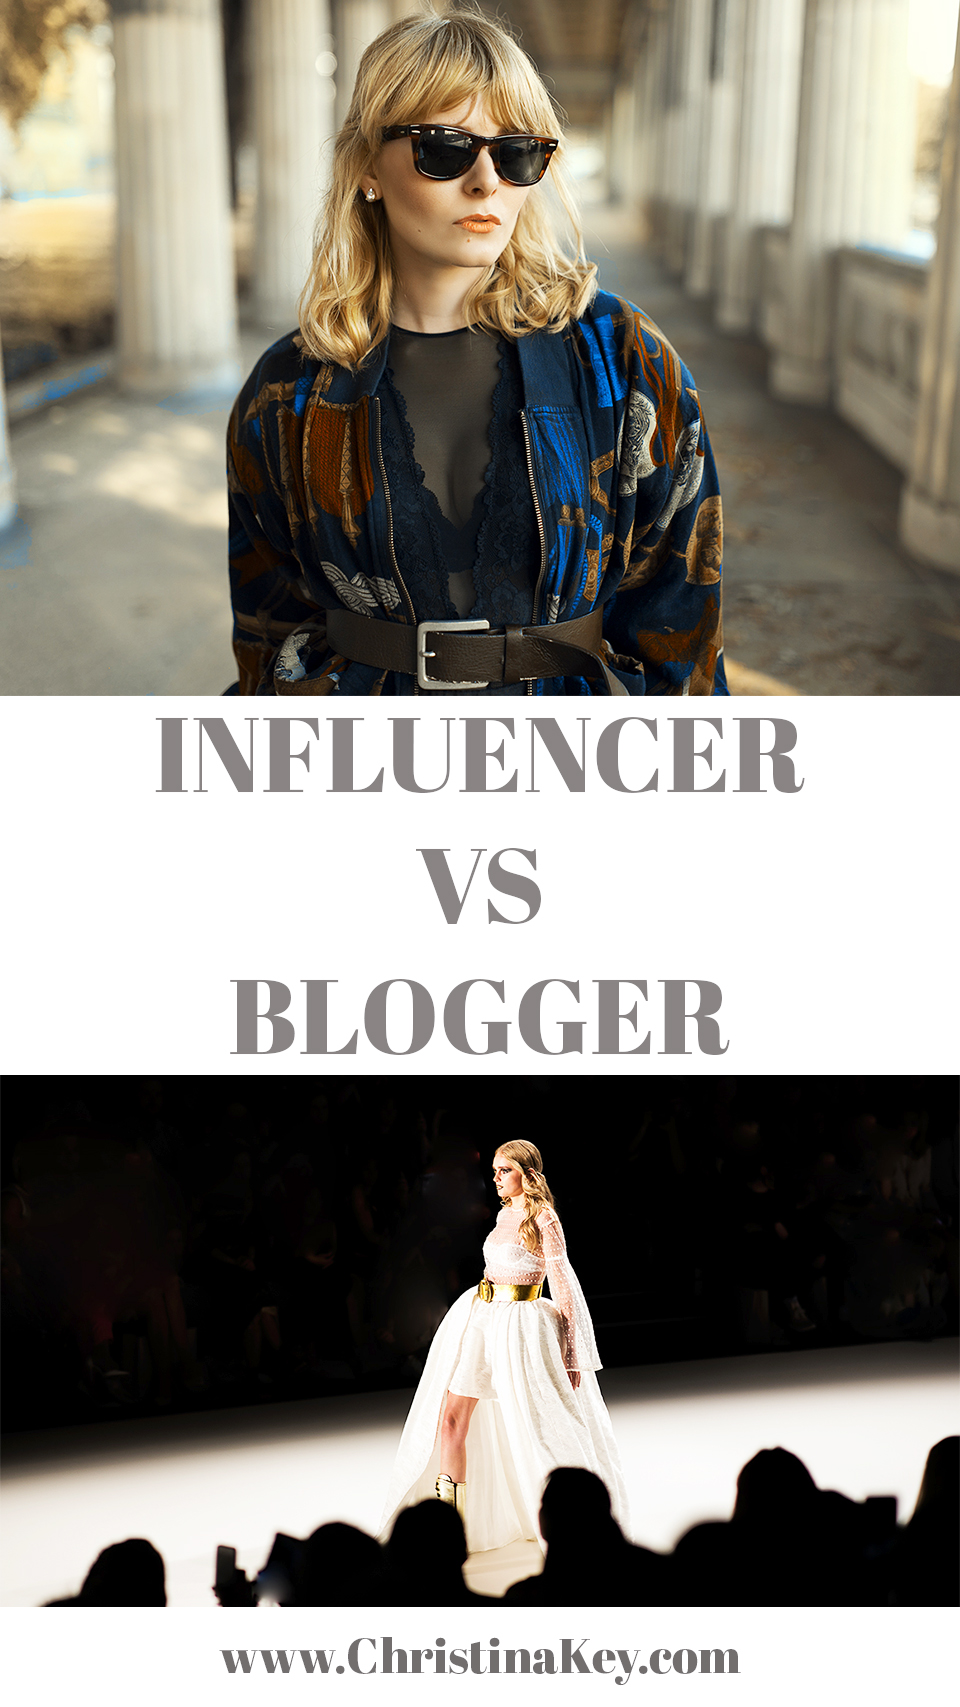 Influencer vs Blogger